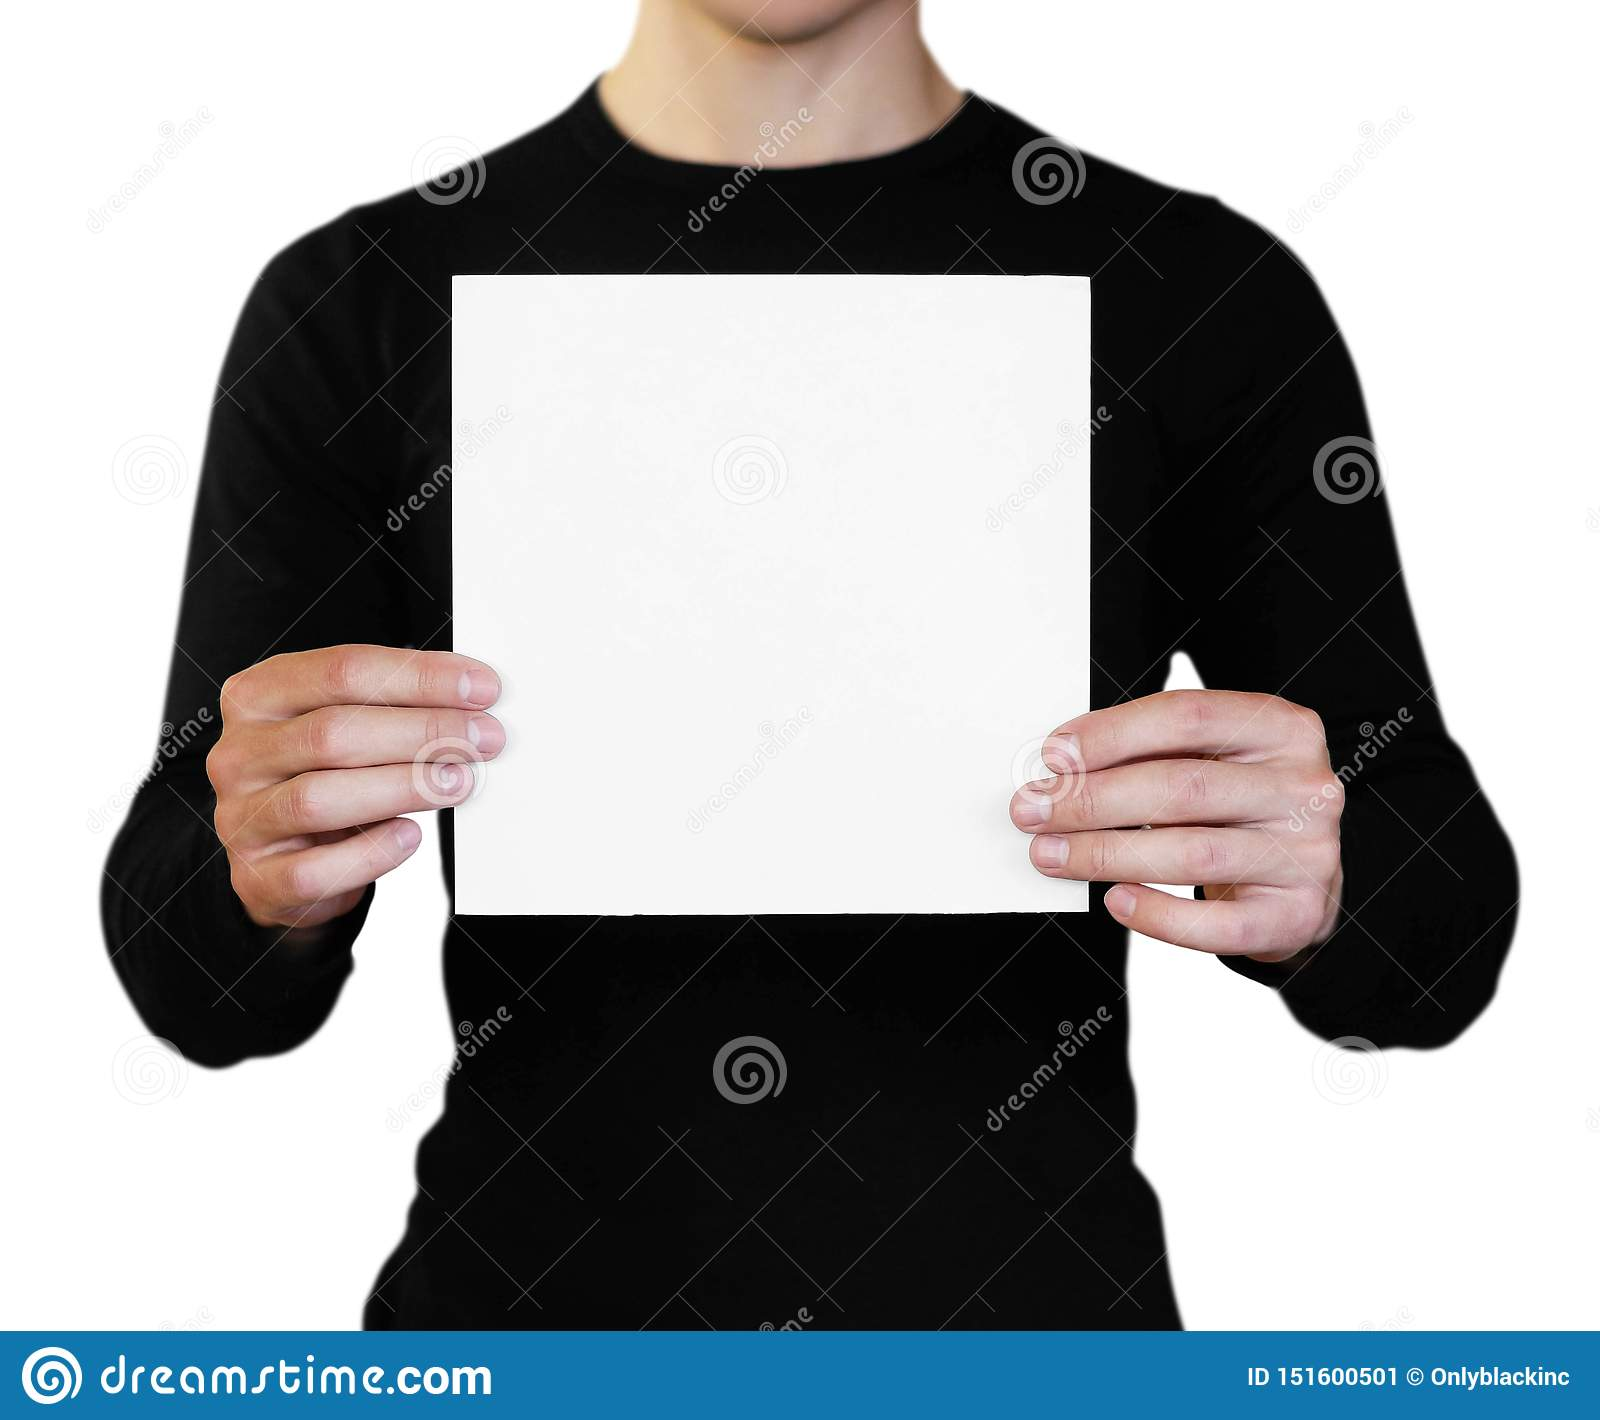 A man holding a white sheet of paper. Holding a booklet. Close up. Isolated on white background